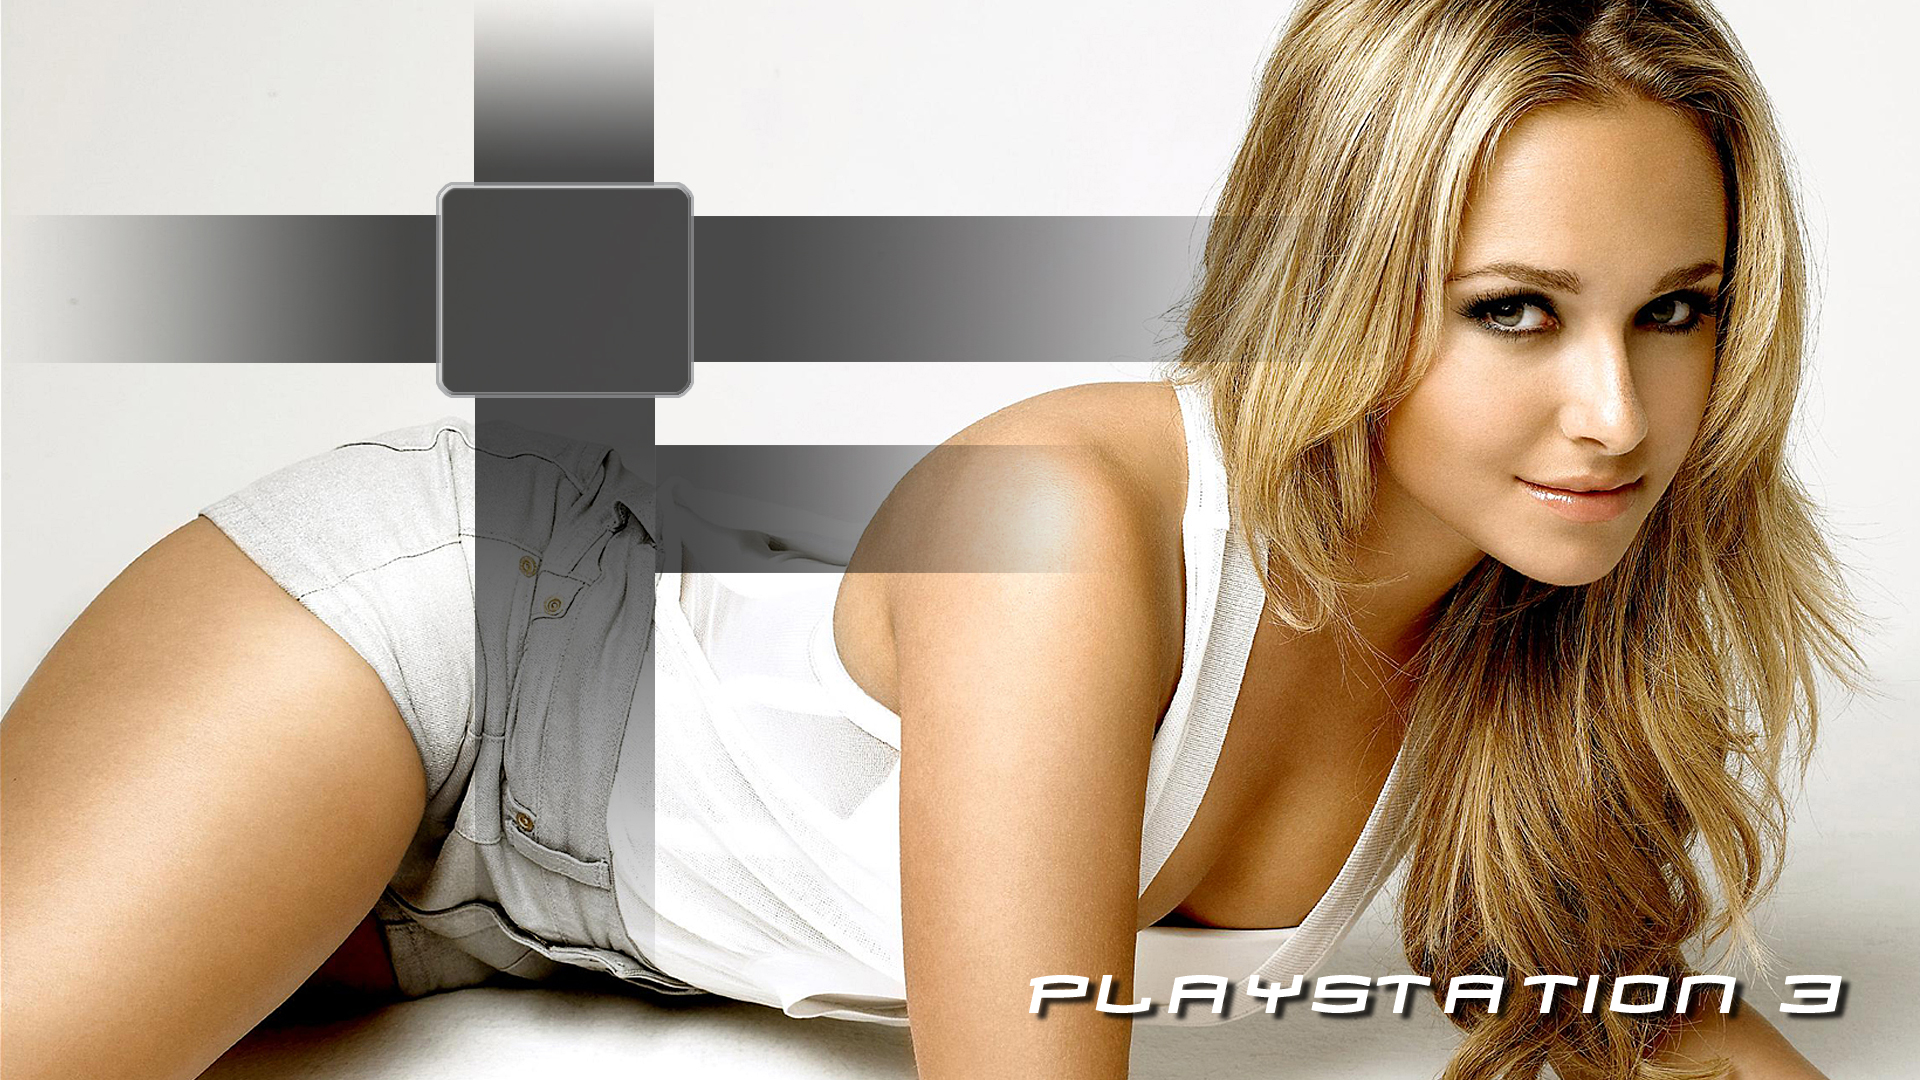 Uncensored adult wallpaper for ps3 nsfw model